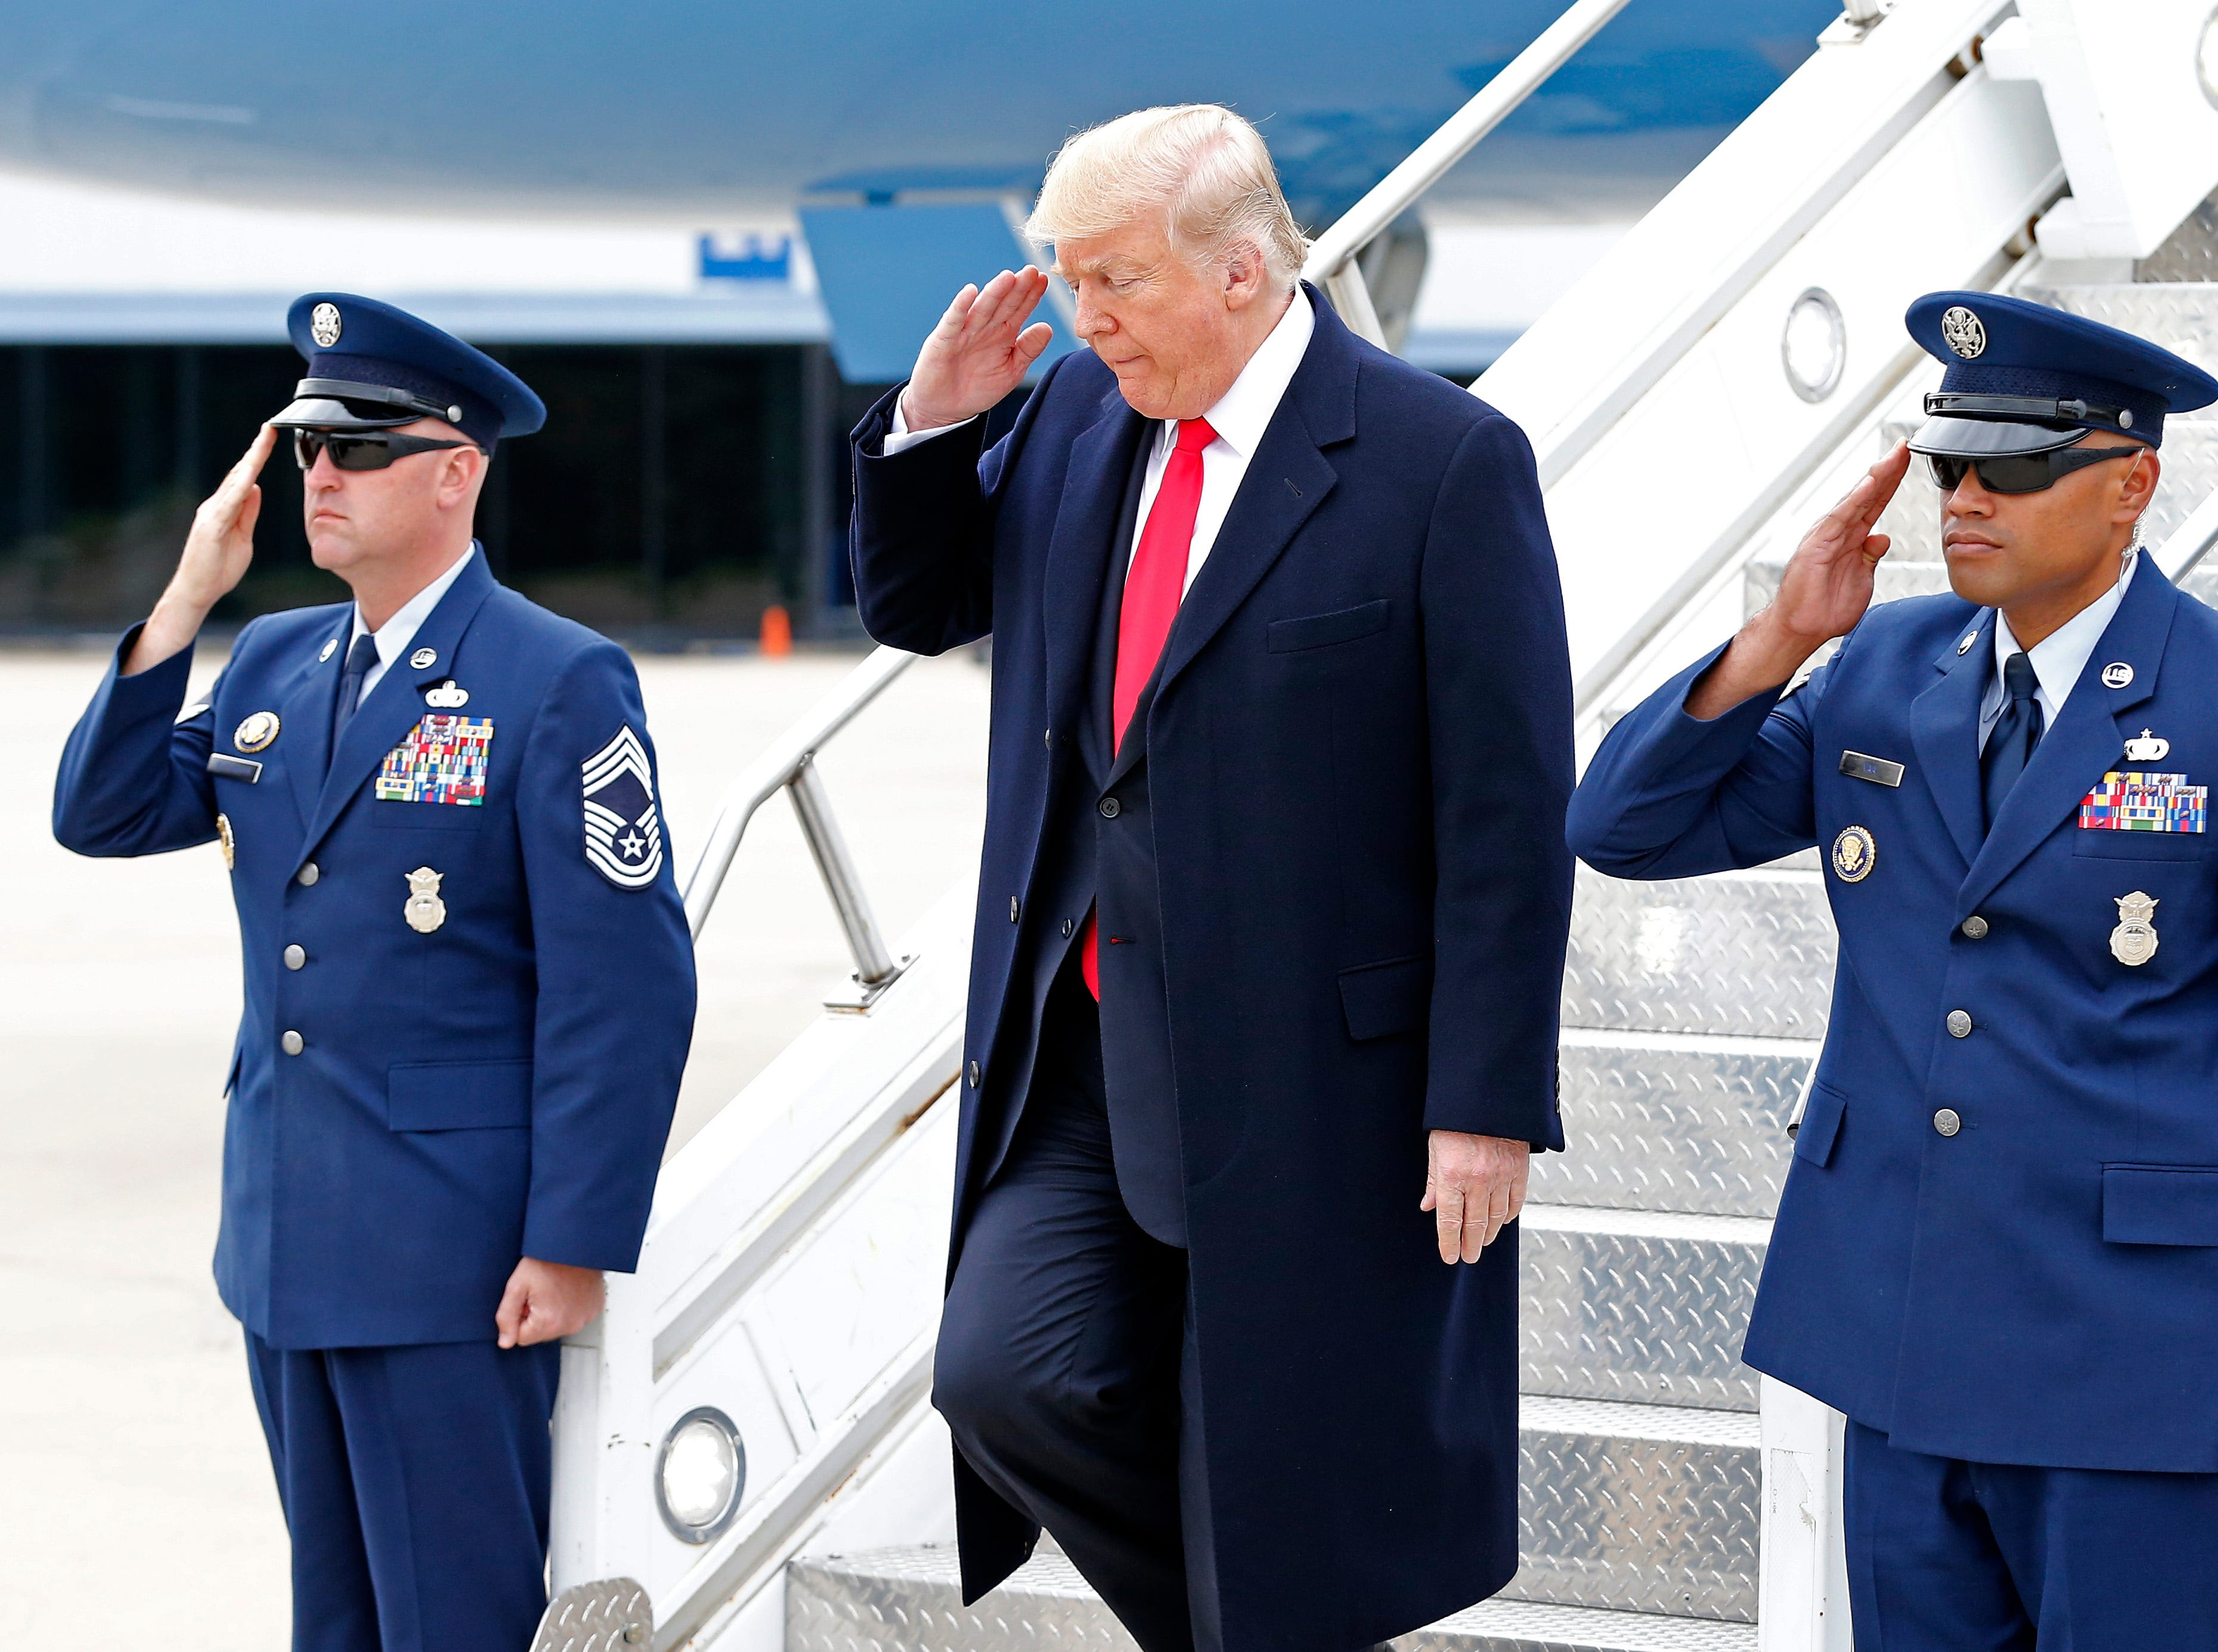 President Donald Trump salutes as he exits Air Force One after landing at Lunken Airport in Cincinnati on Friday, Oct. 12, 2018. President Trump visited the Cincinnati area for a MAGA Rally at the Warren County Fair Grounds in Lebanon, Ohio, Friday night.